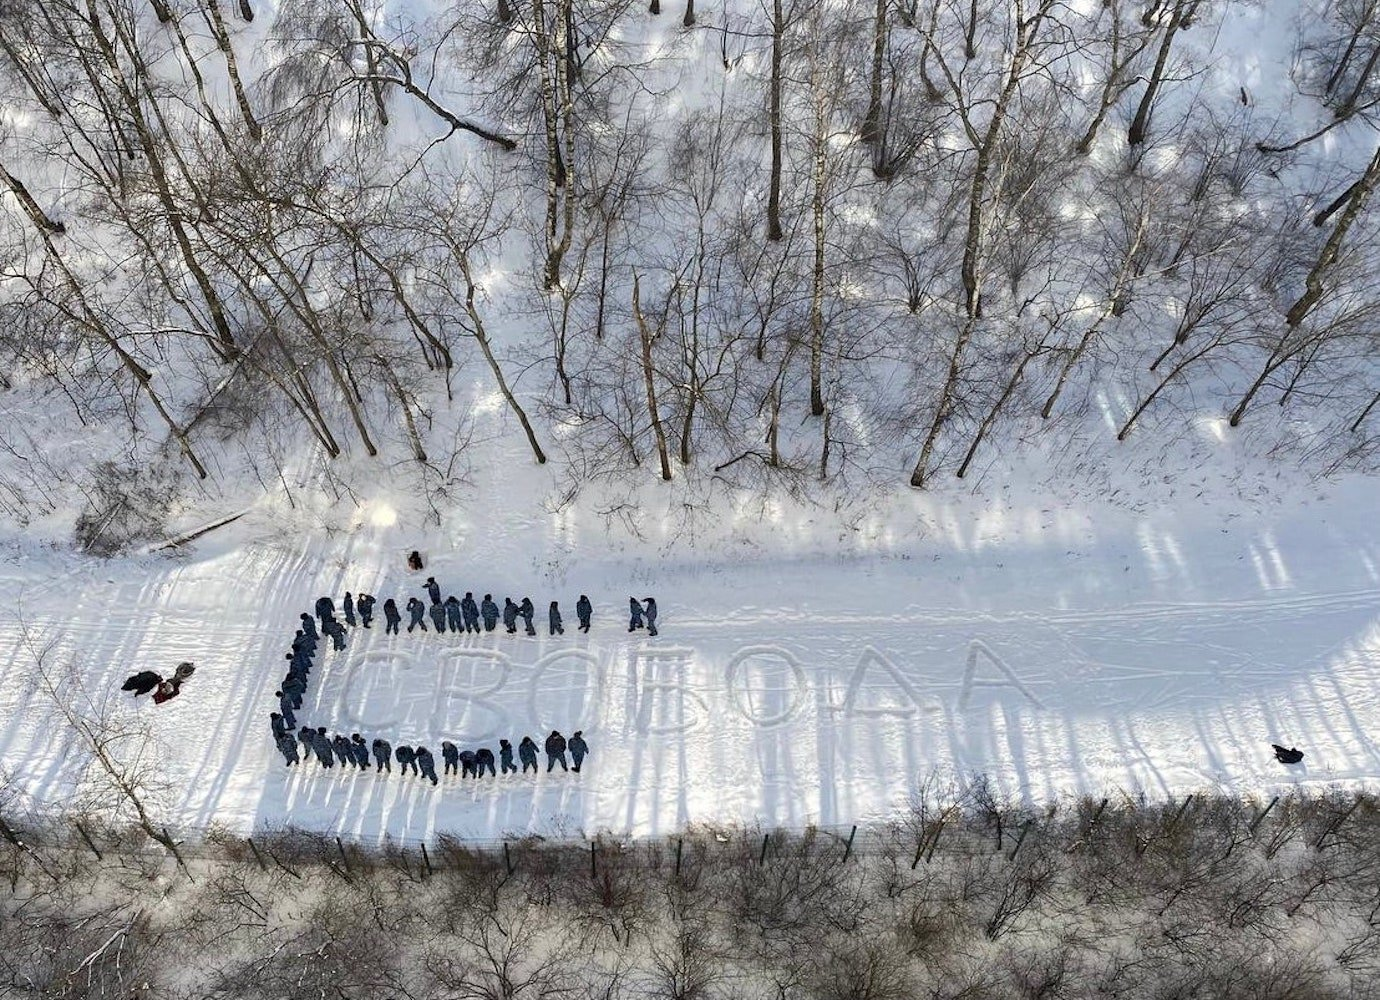 Russian photographer detained and fined after spelling out the word 'freedom' in snow